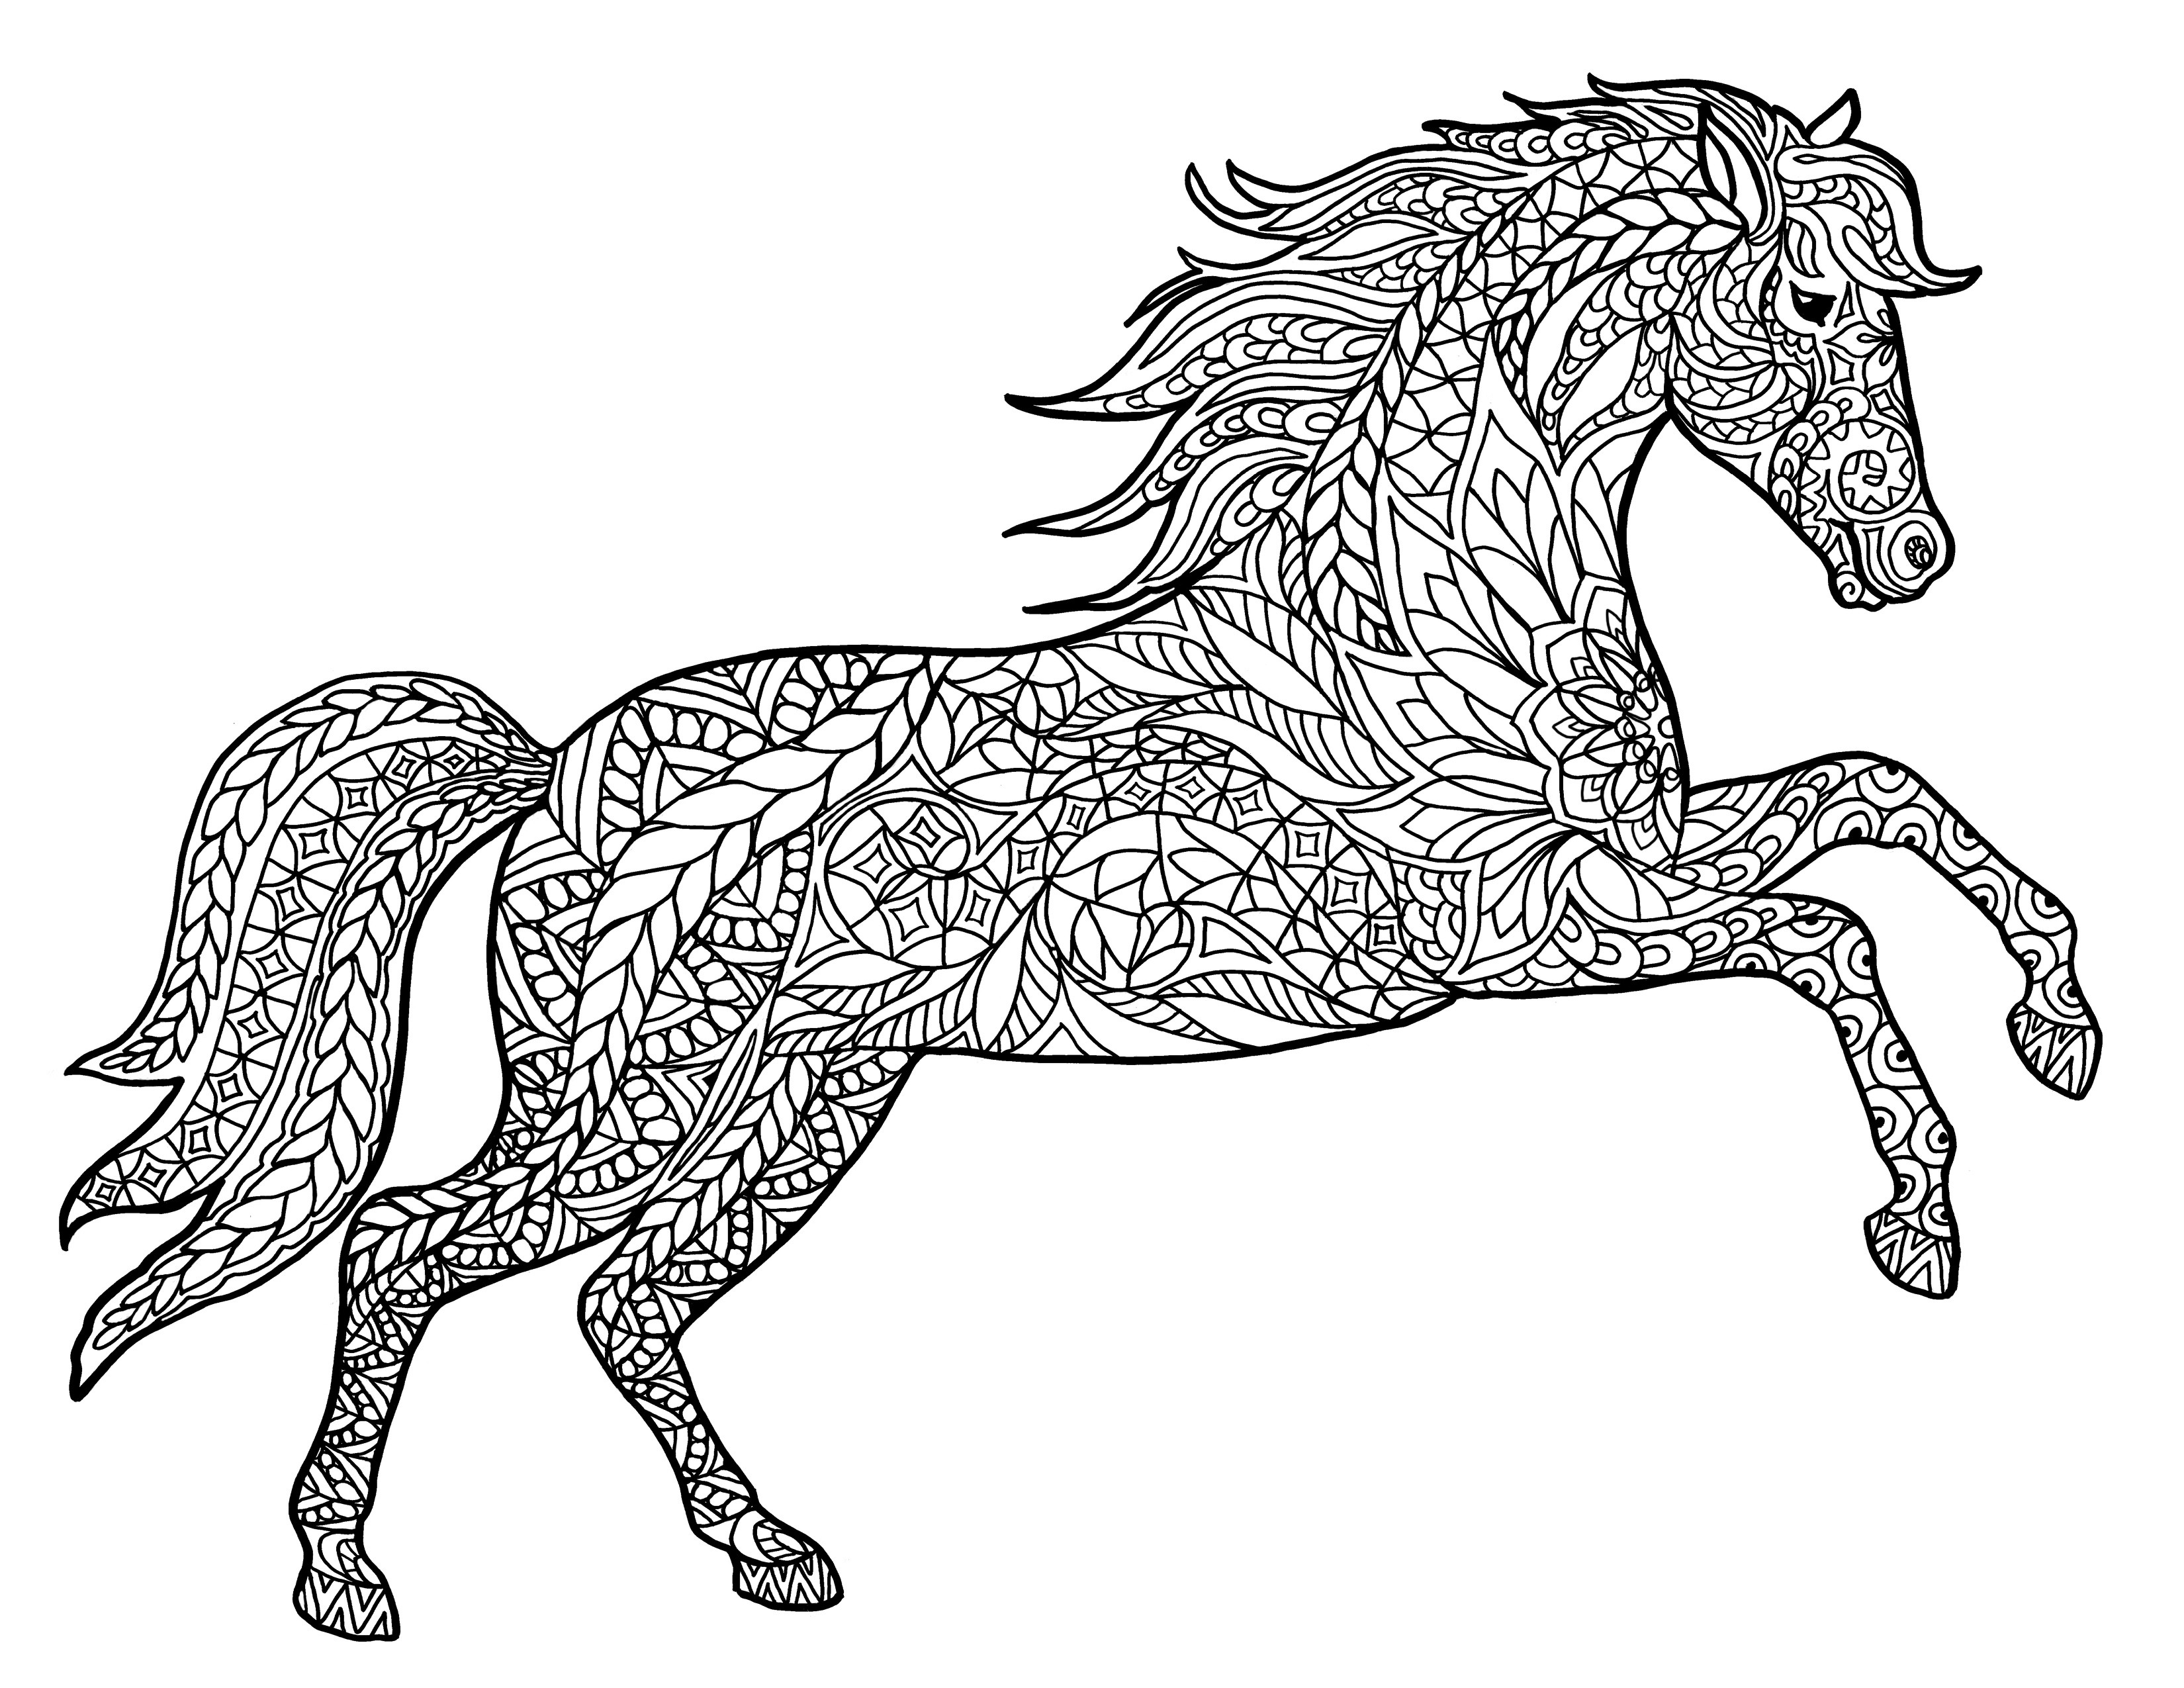 Best ideas about Horses Coloring Pages For Adults . Save or Pin Animal Coloring Pages for Adults Best Coloring Pages For Now.